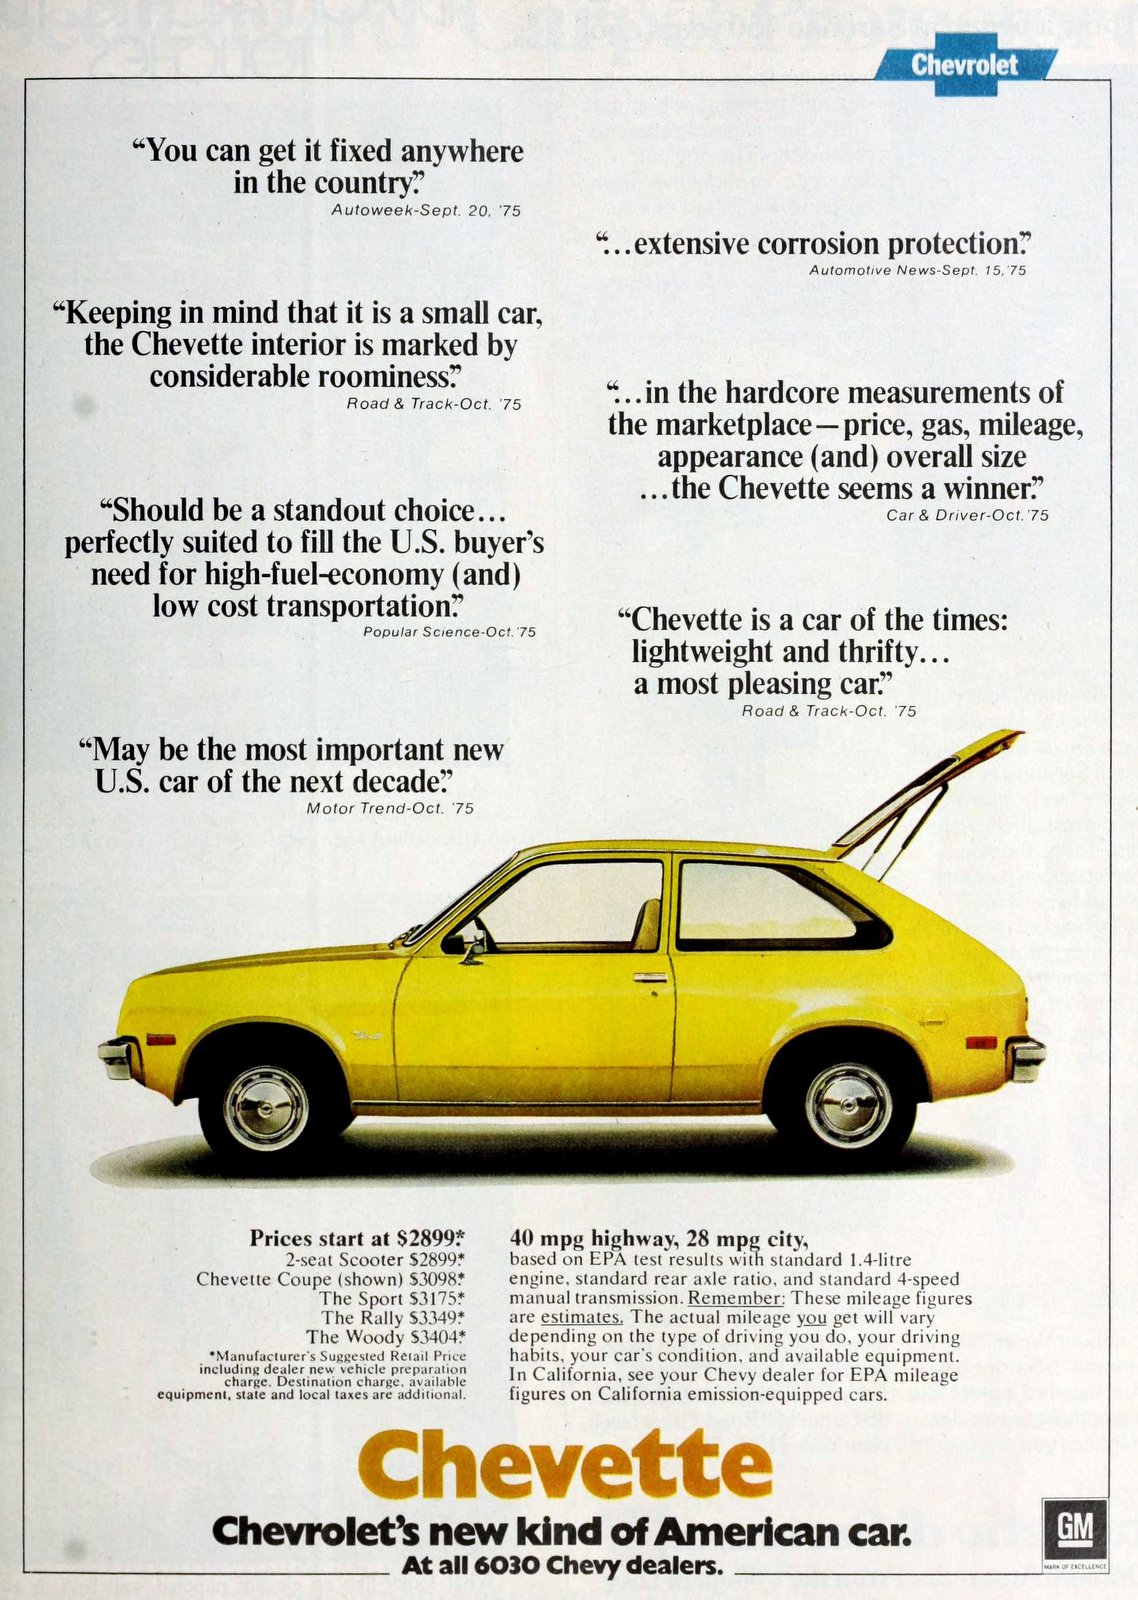 Chevette - Chevrolet's new kind of American car (1976)